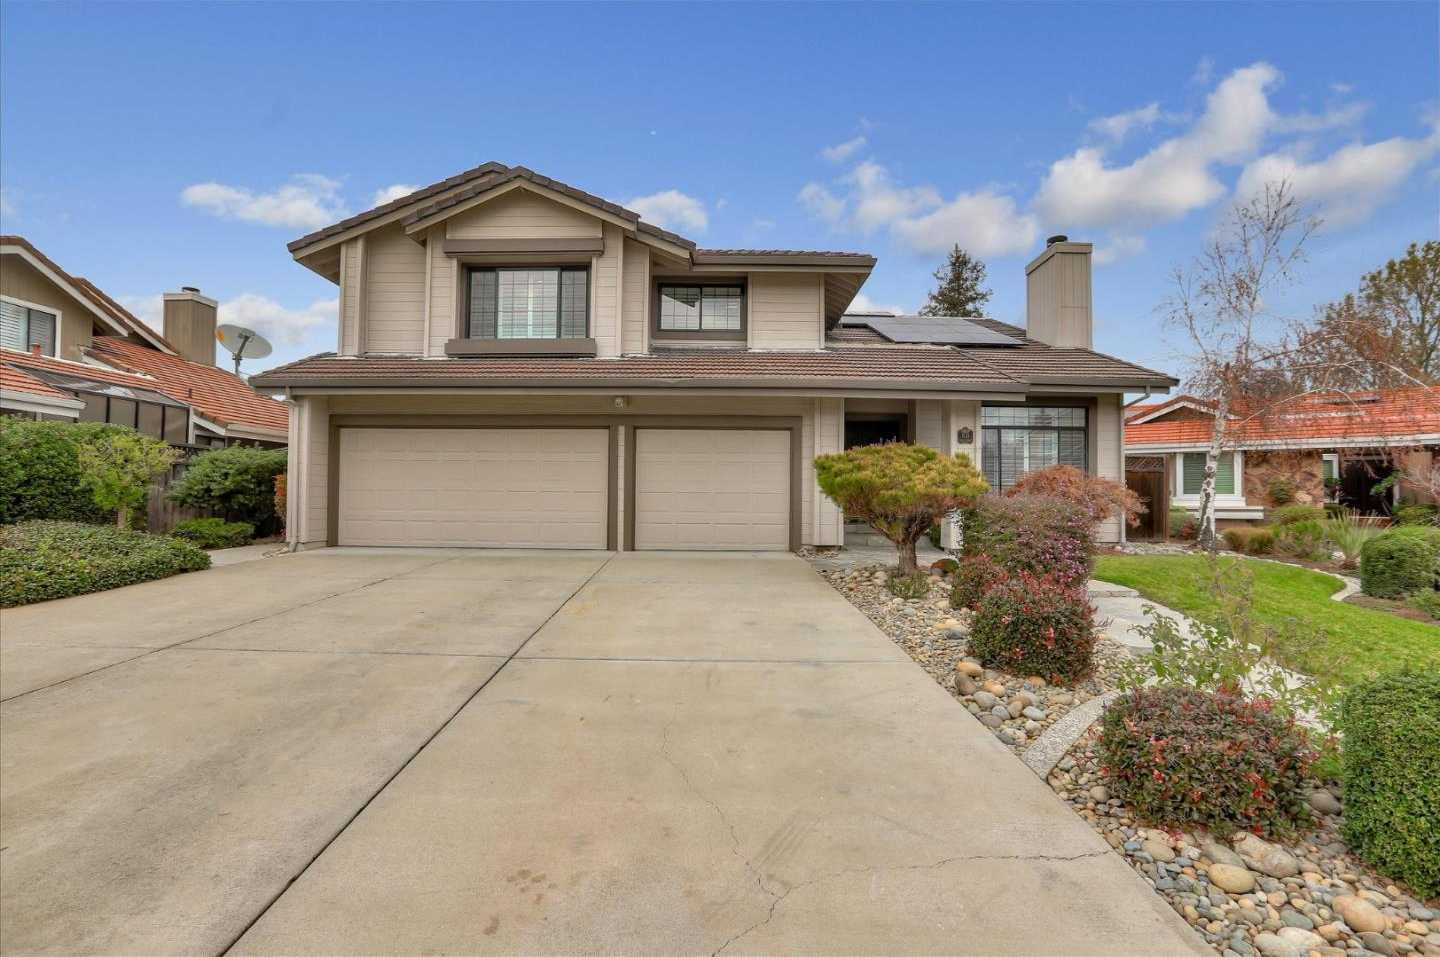 $1,995,000 - 5Br/3Ba -  for Sale in San Jose